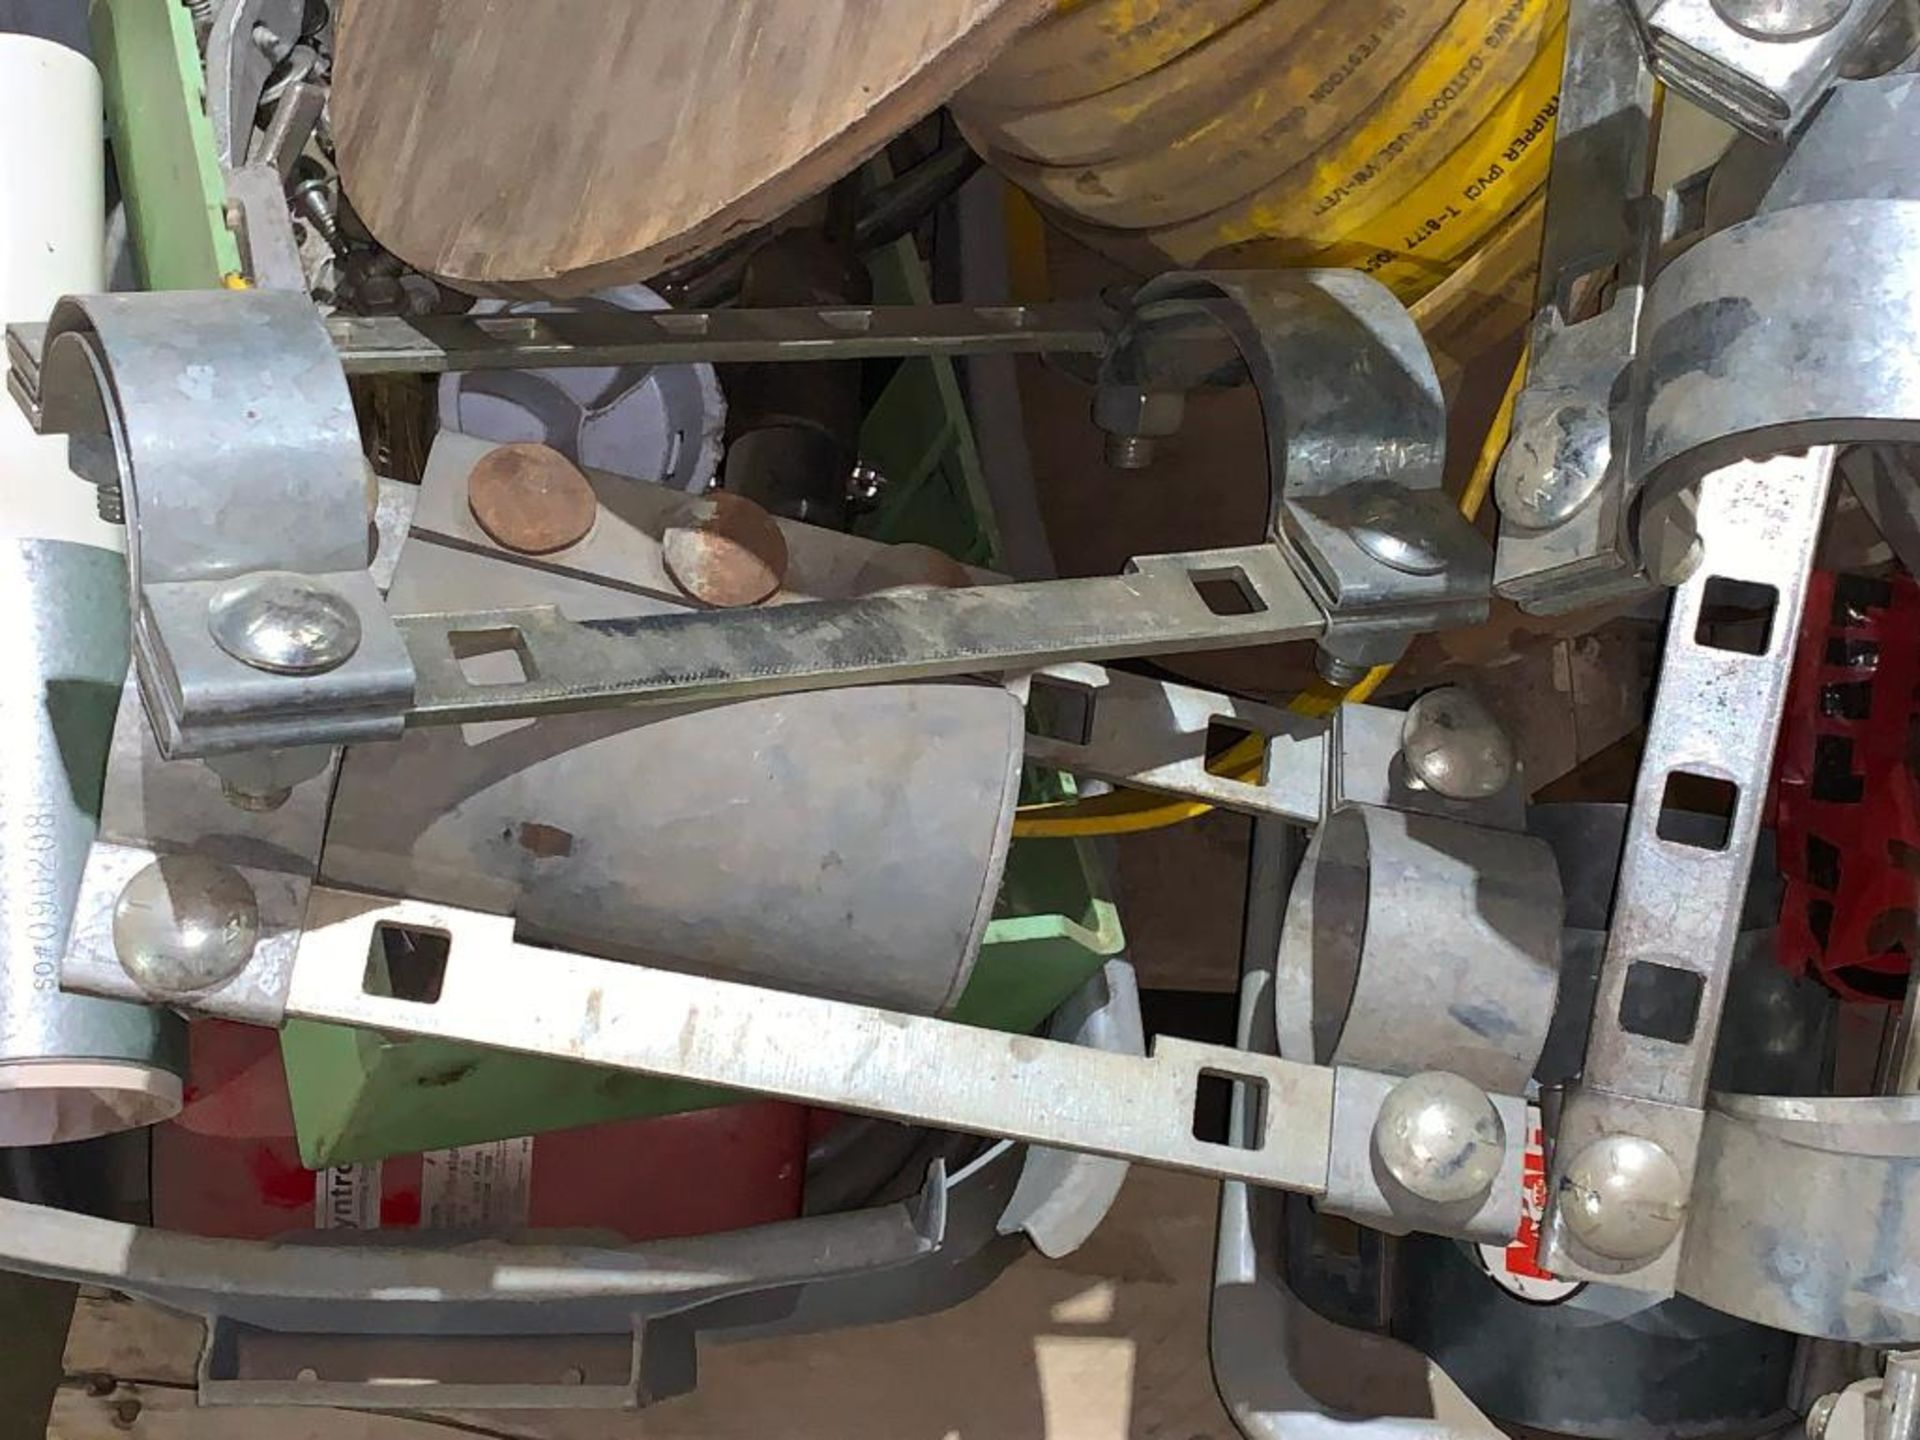 pallet of air pipe clamps - Image 4 of 6